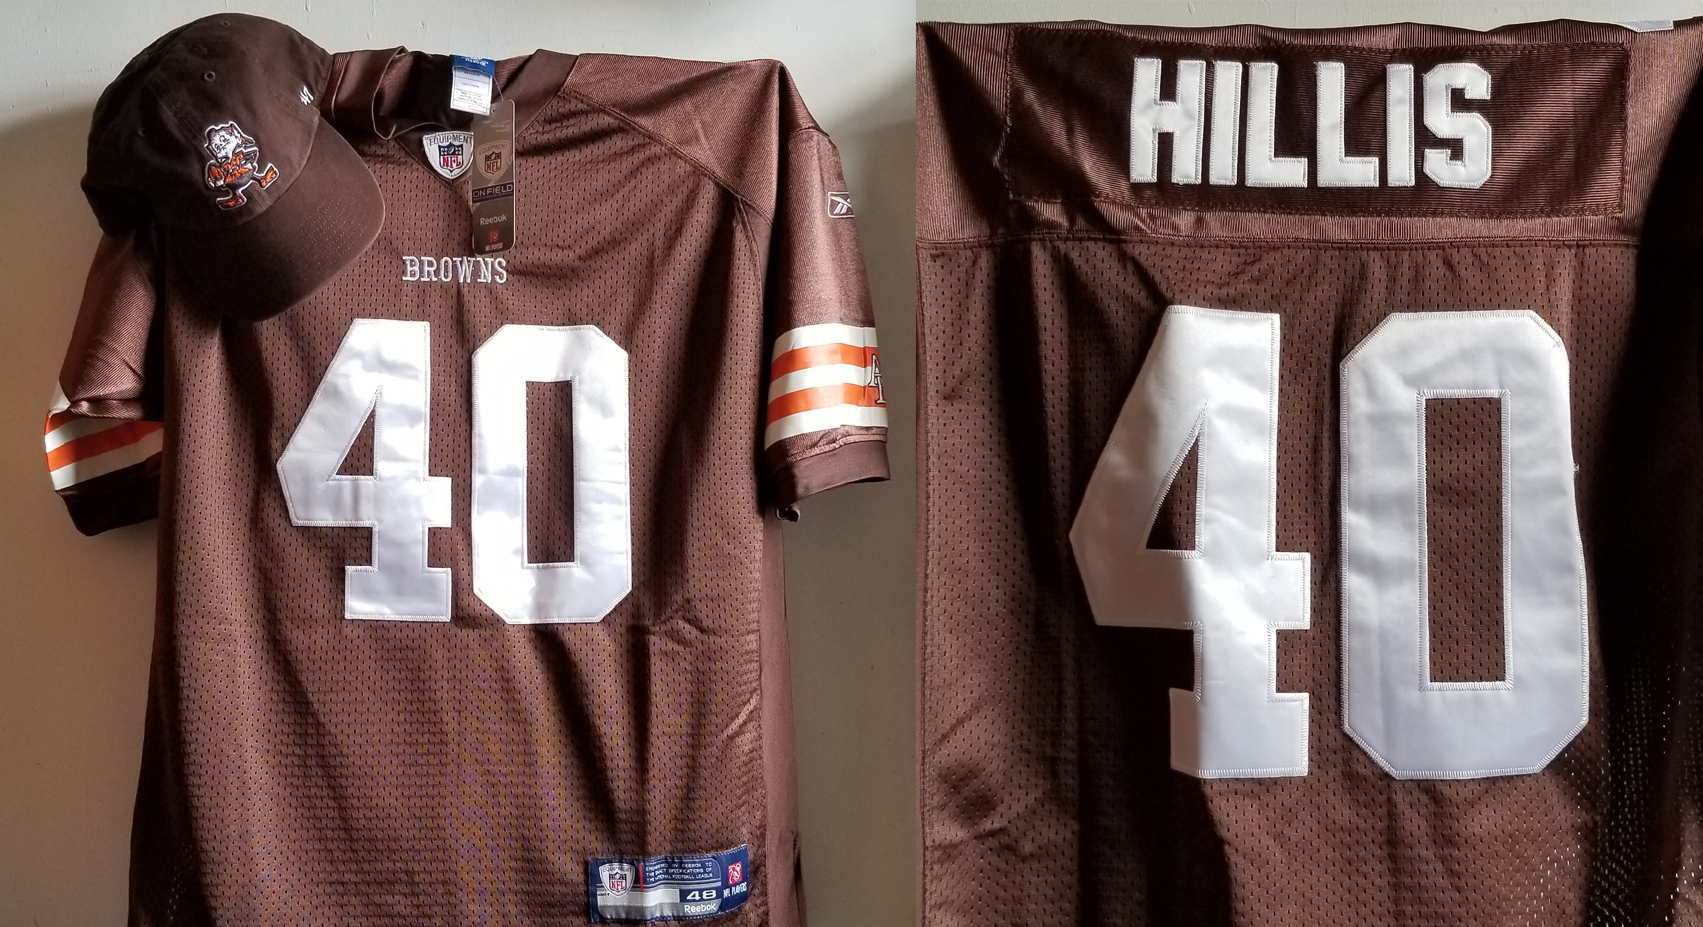 Petyton Hillis Browns jersey and brownies cap